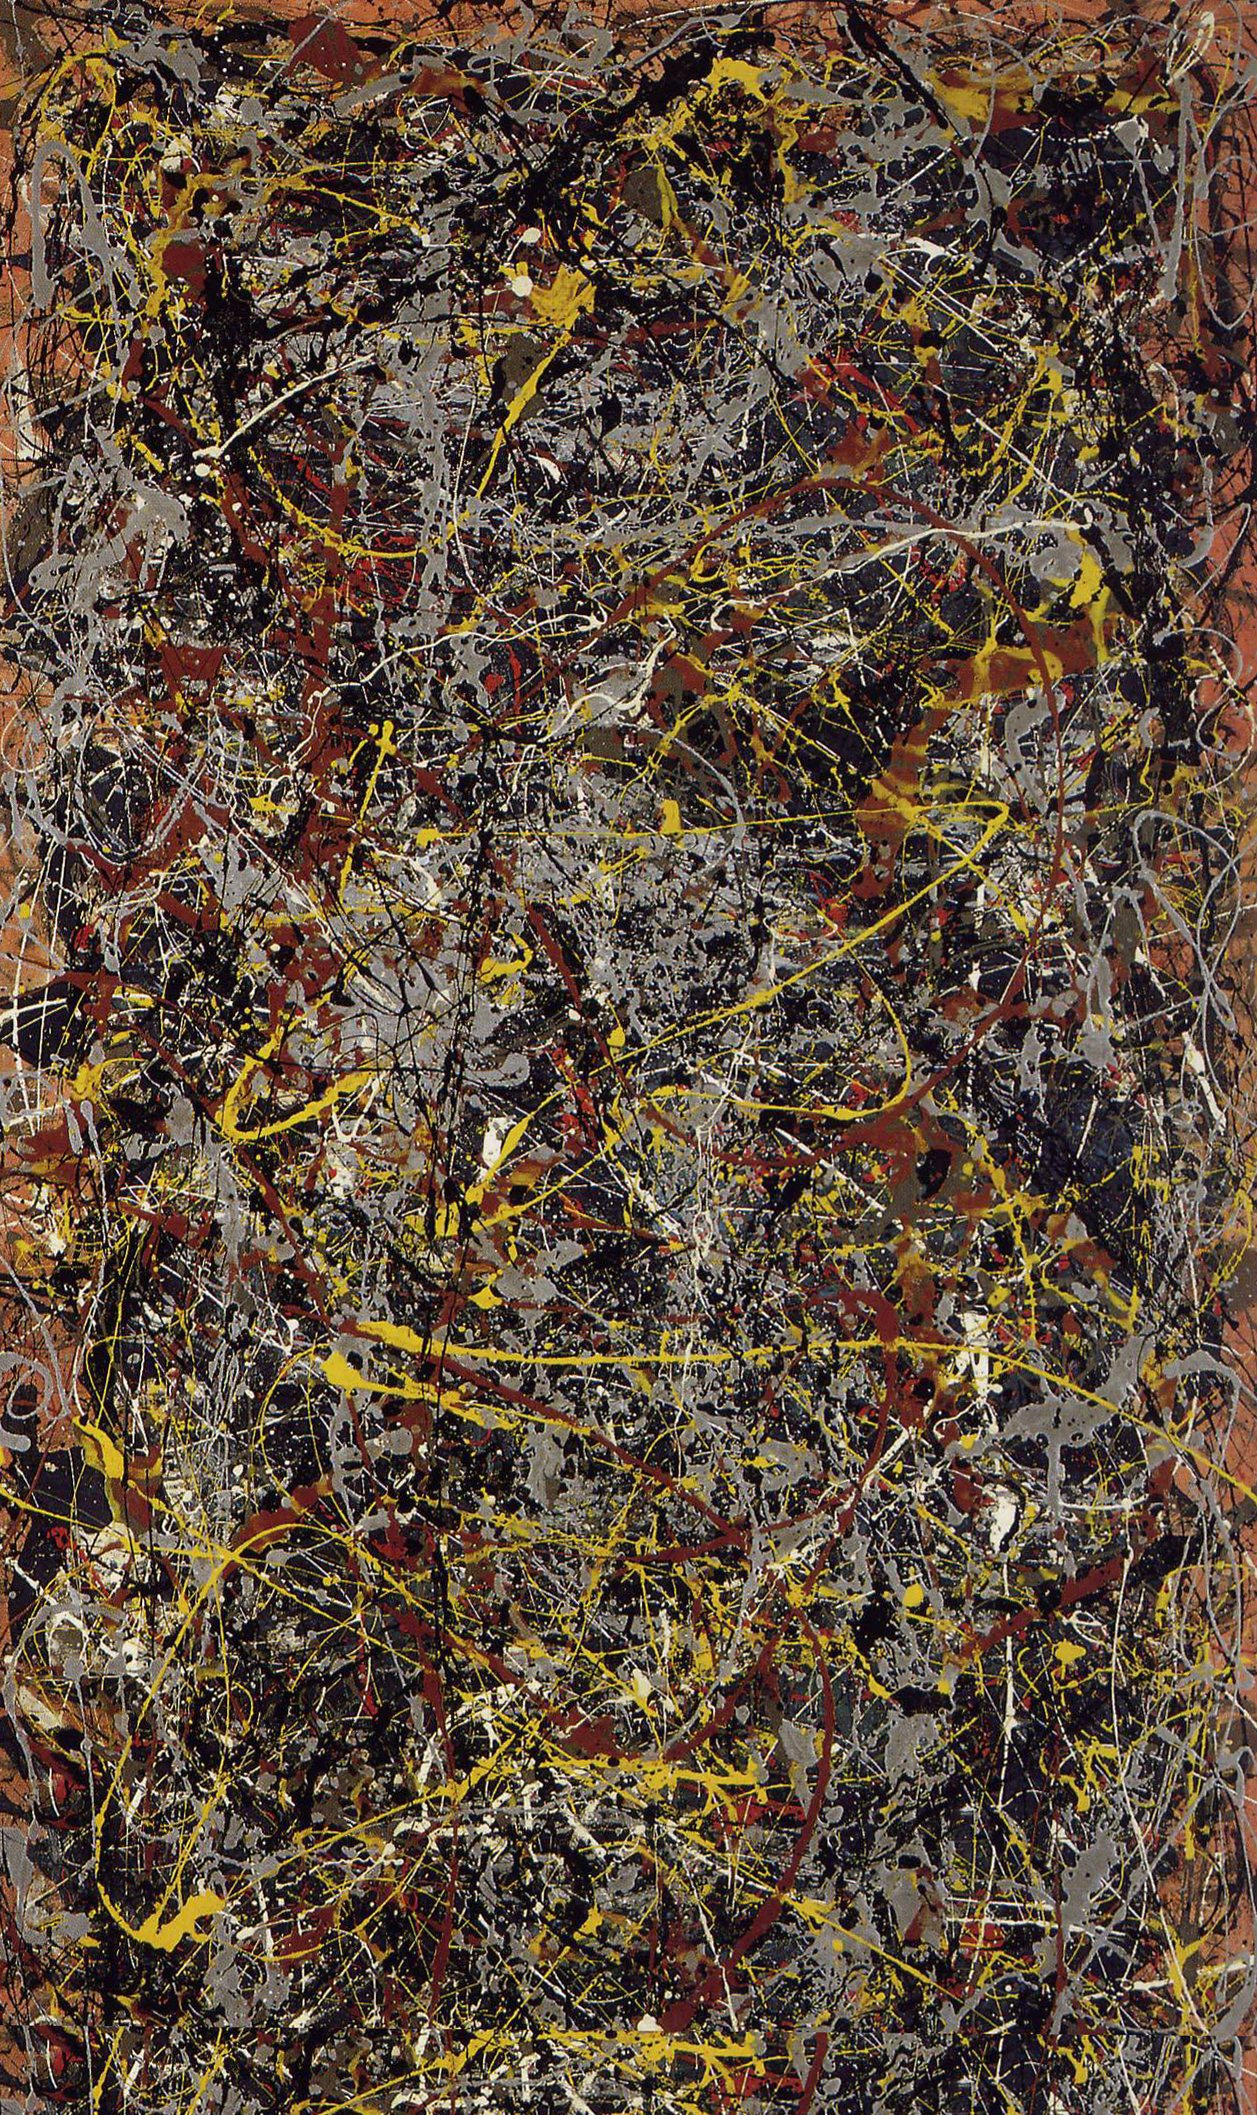 Jackson pollock tomdeanperspectives for Mural jackson pollock